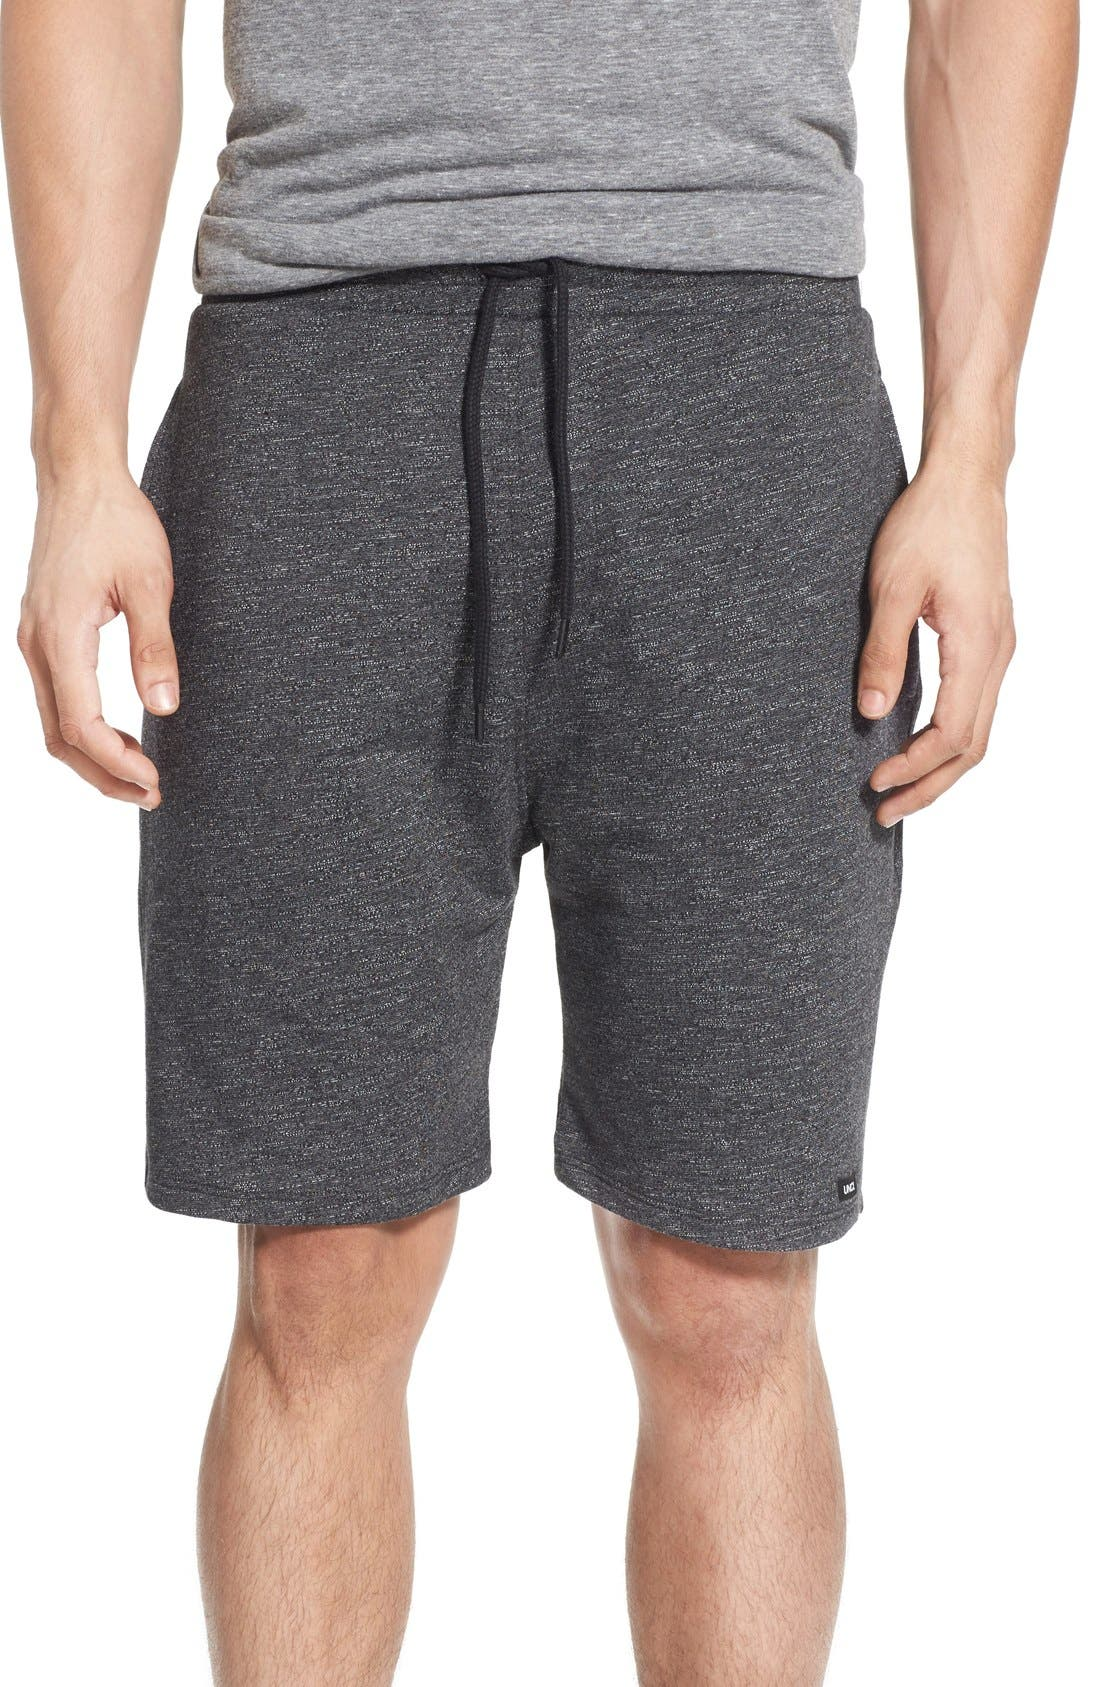 UNCL 'Monster' Sweat Shorts